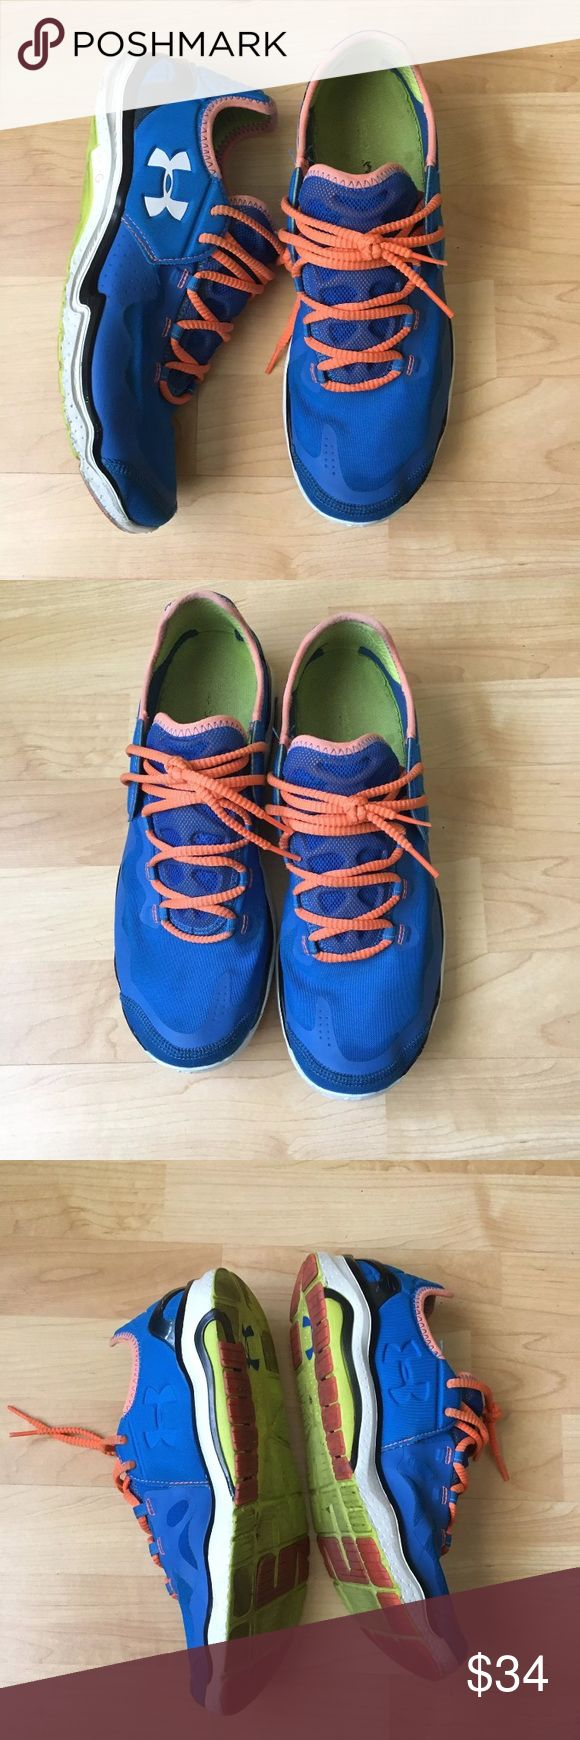 Under Armour Men's Blue Micro G Sneakers Size 11 For Sale is this Pair of Under Armour Micro G Running Shoes in a size 11. These shoes are blue with orange laces. Road-ready and engineered for speed. Up top there's light, breathable HeatGear fabric for keeping your feet dry during hot weather. Underneath you've got UA's super-responsive Micro G cushioning, which keeps you low to the ground for a more stable ride. The inter sole is the 4D Foam cushion that molds to your foot to give you a…